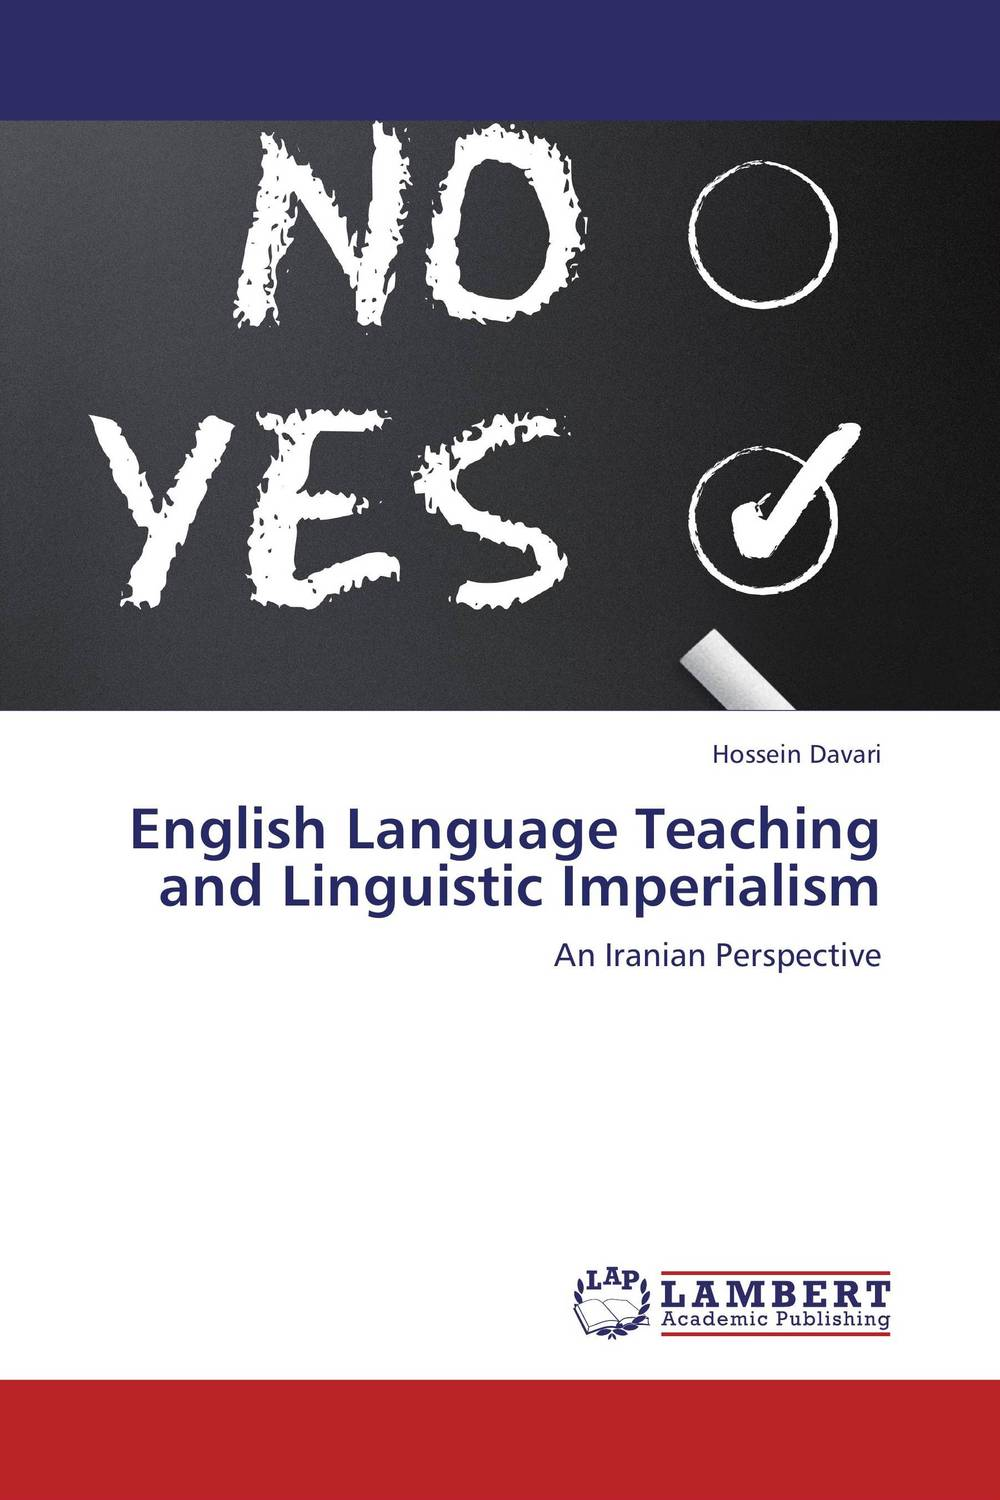 English Language Teaching and Linguistic Imperialism cultural and linguistic hybridity in postcolonial text